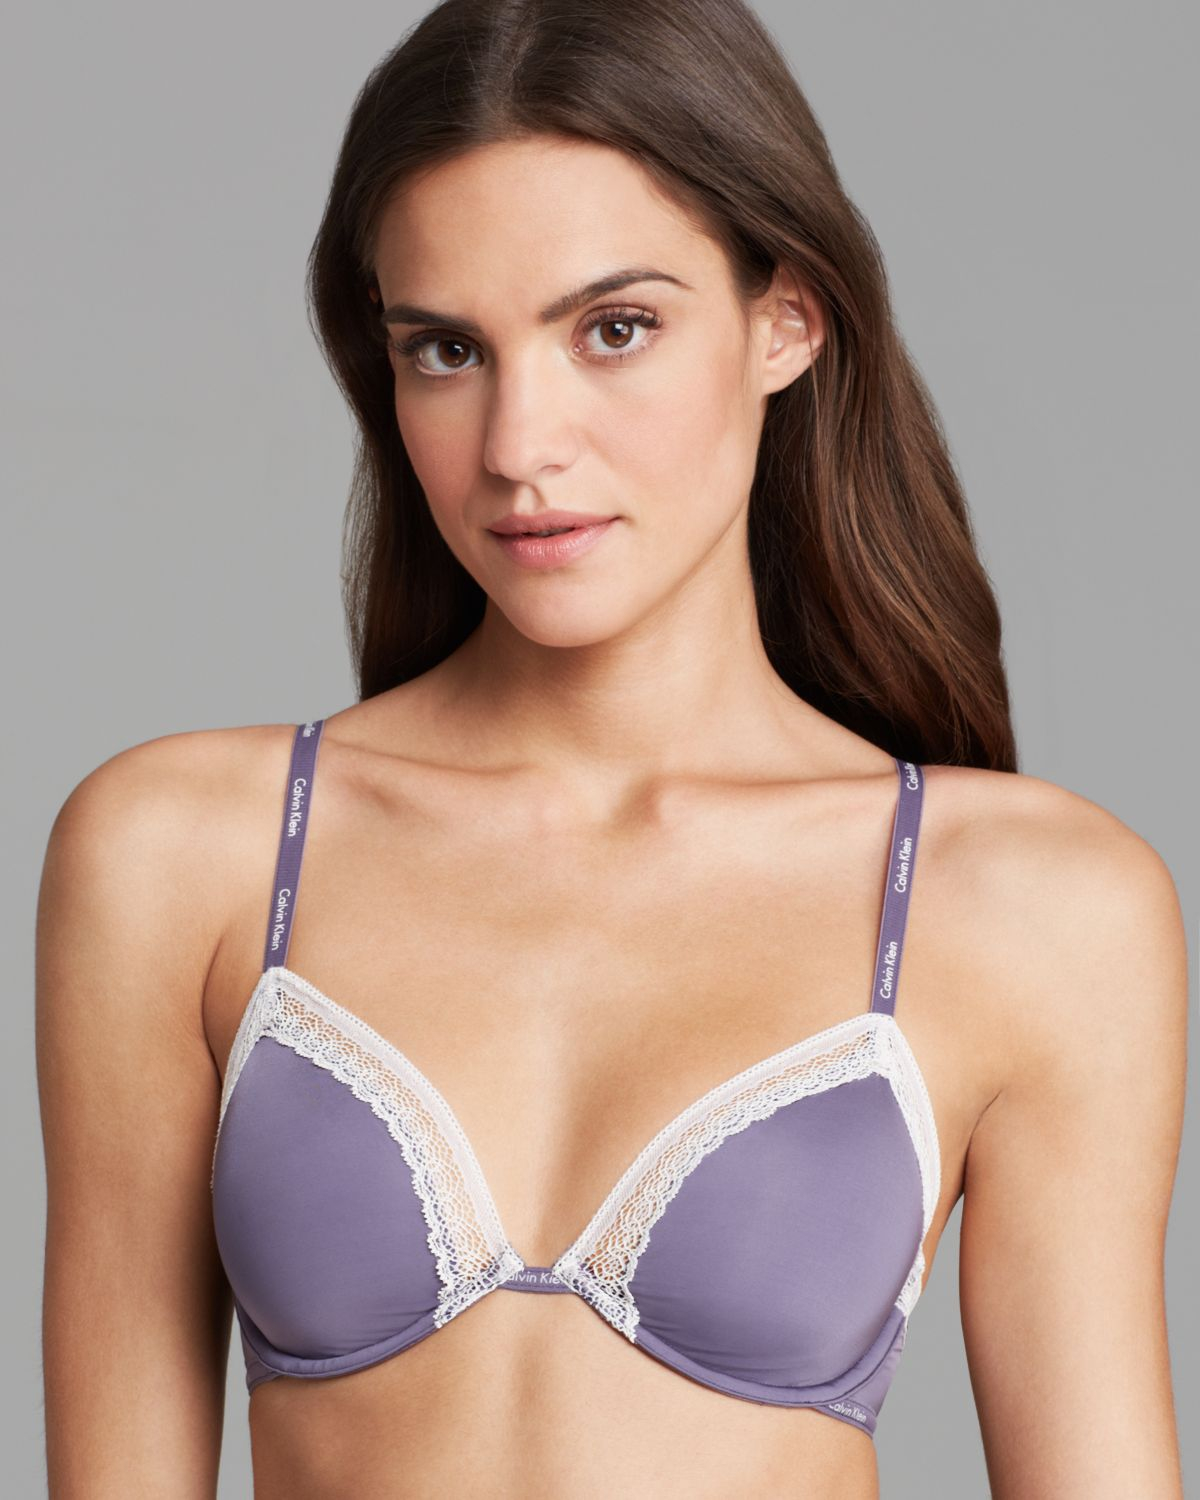 d5f2145c6299a Calvin klein underwire bra perfectly fit sexy signature unlined jpg  1200x1500 Bra lyst